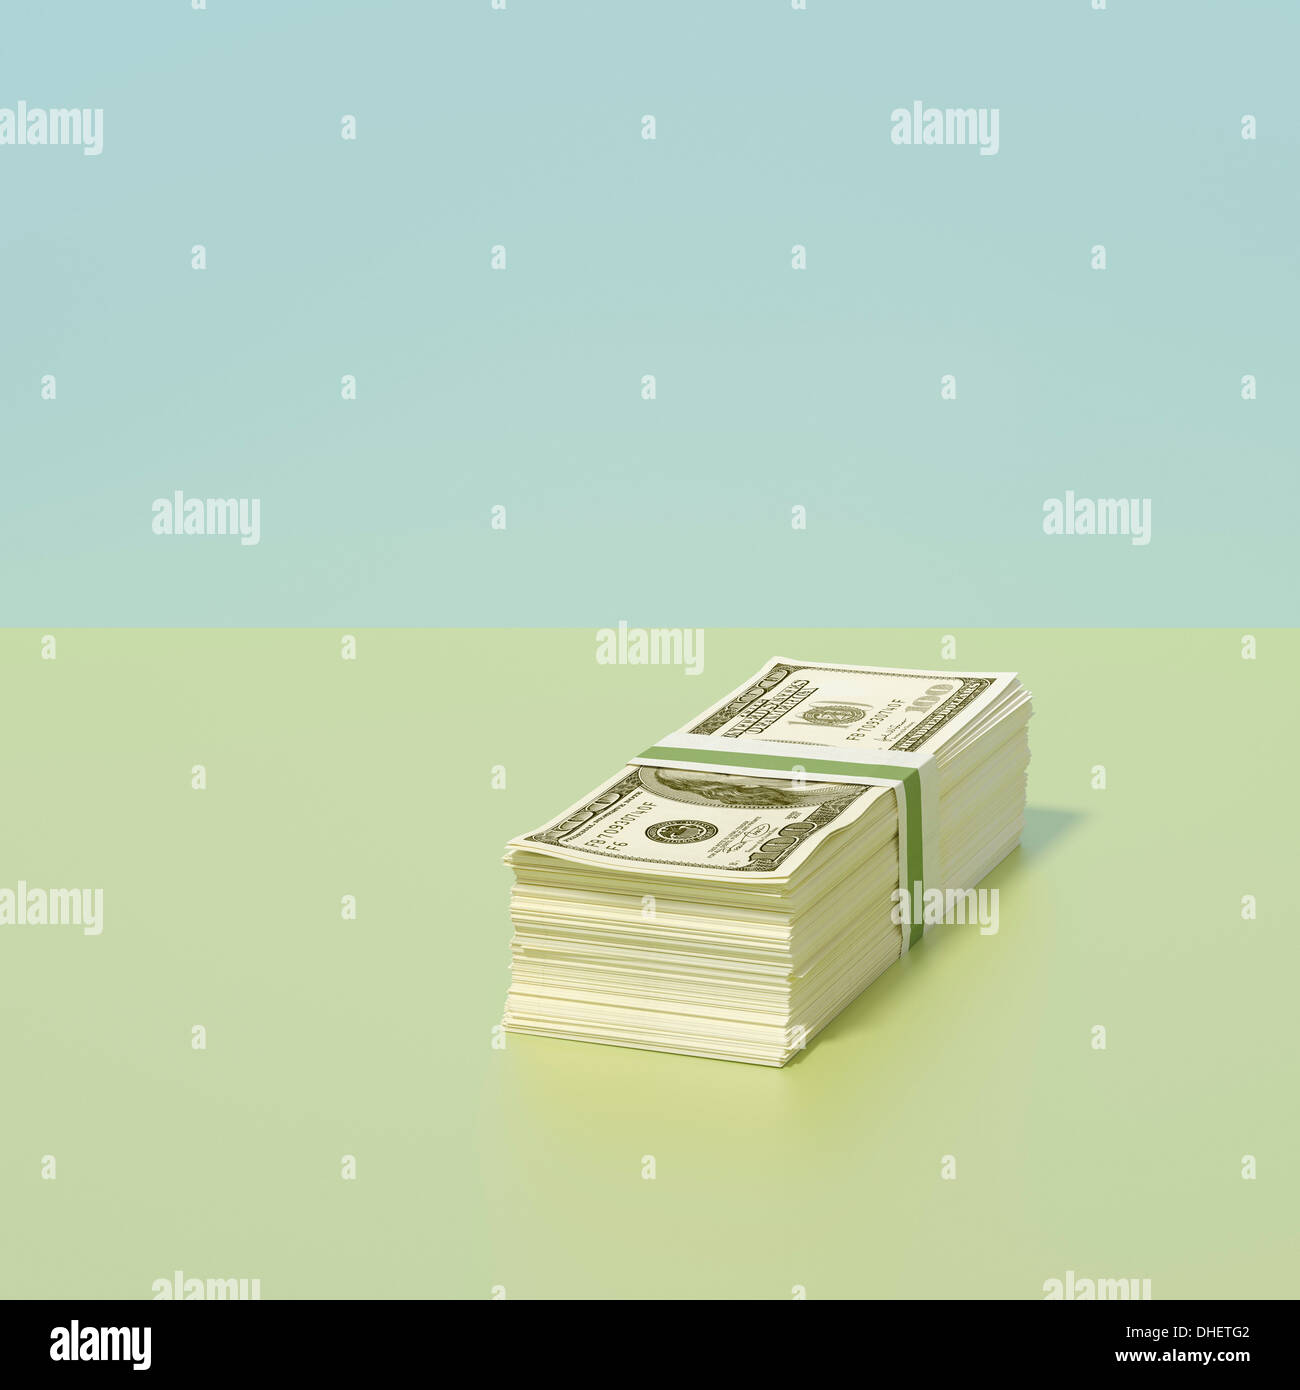 Stack of dollars - Stock Image